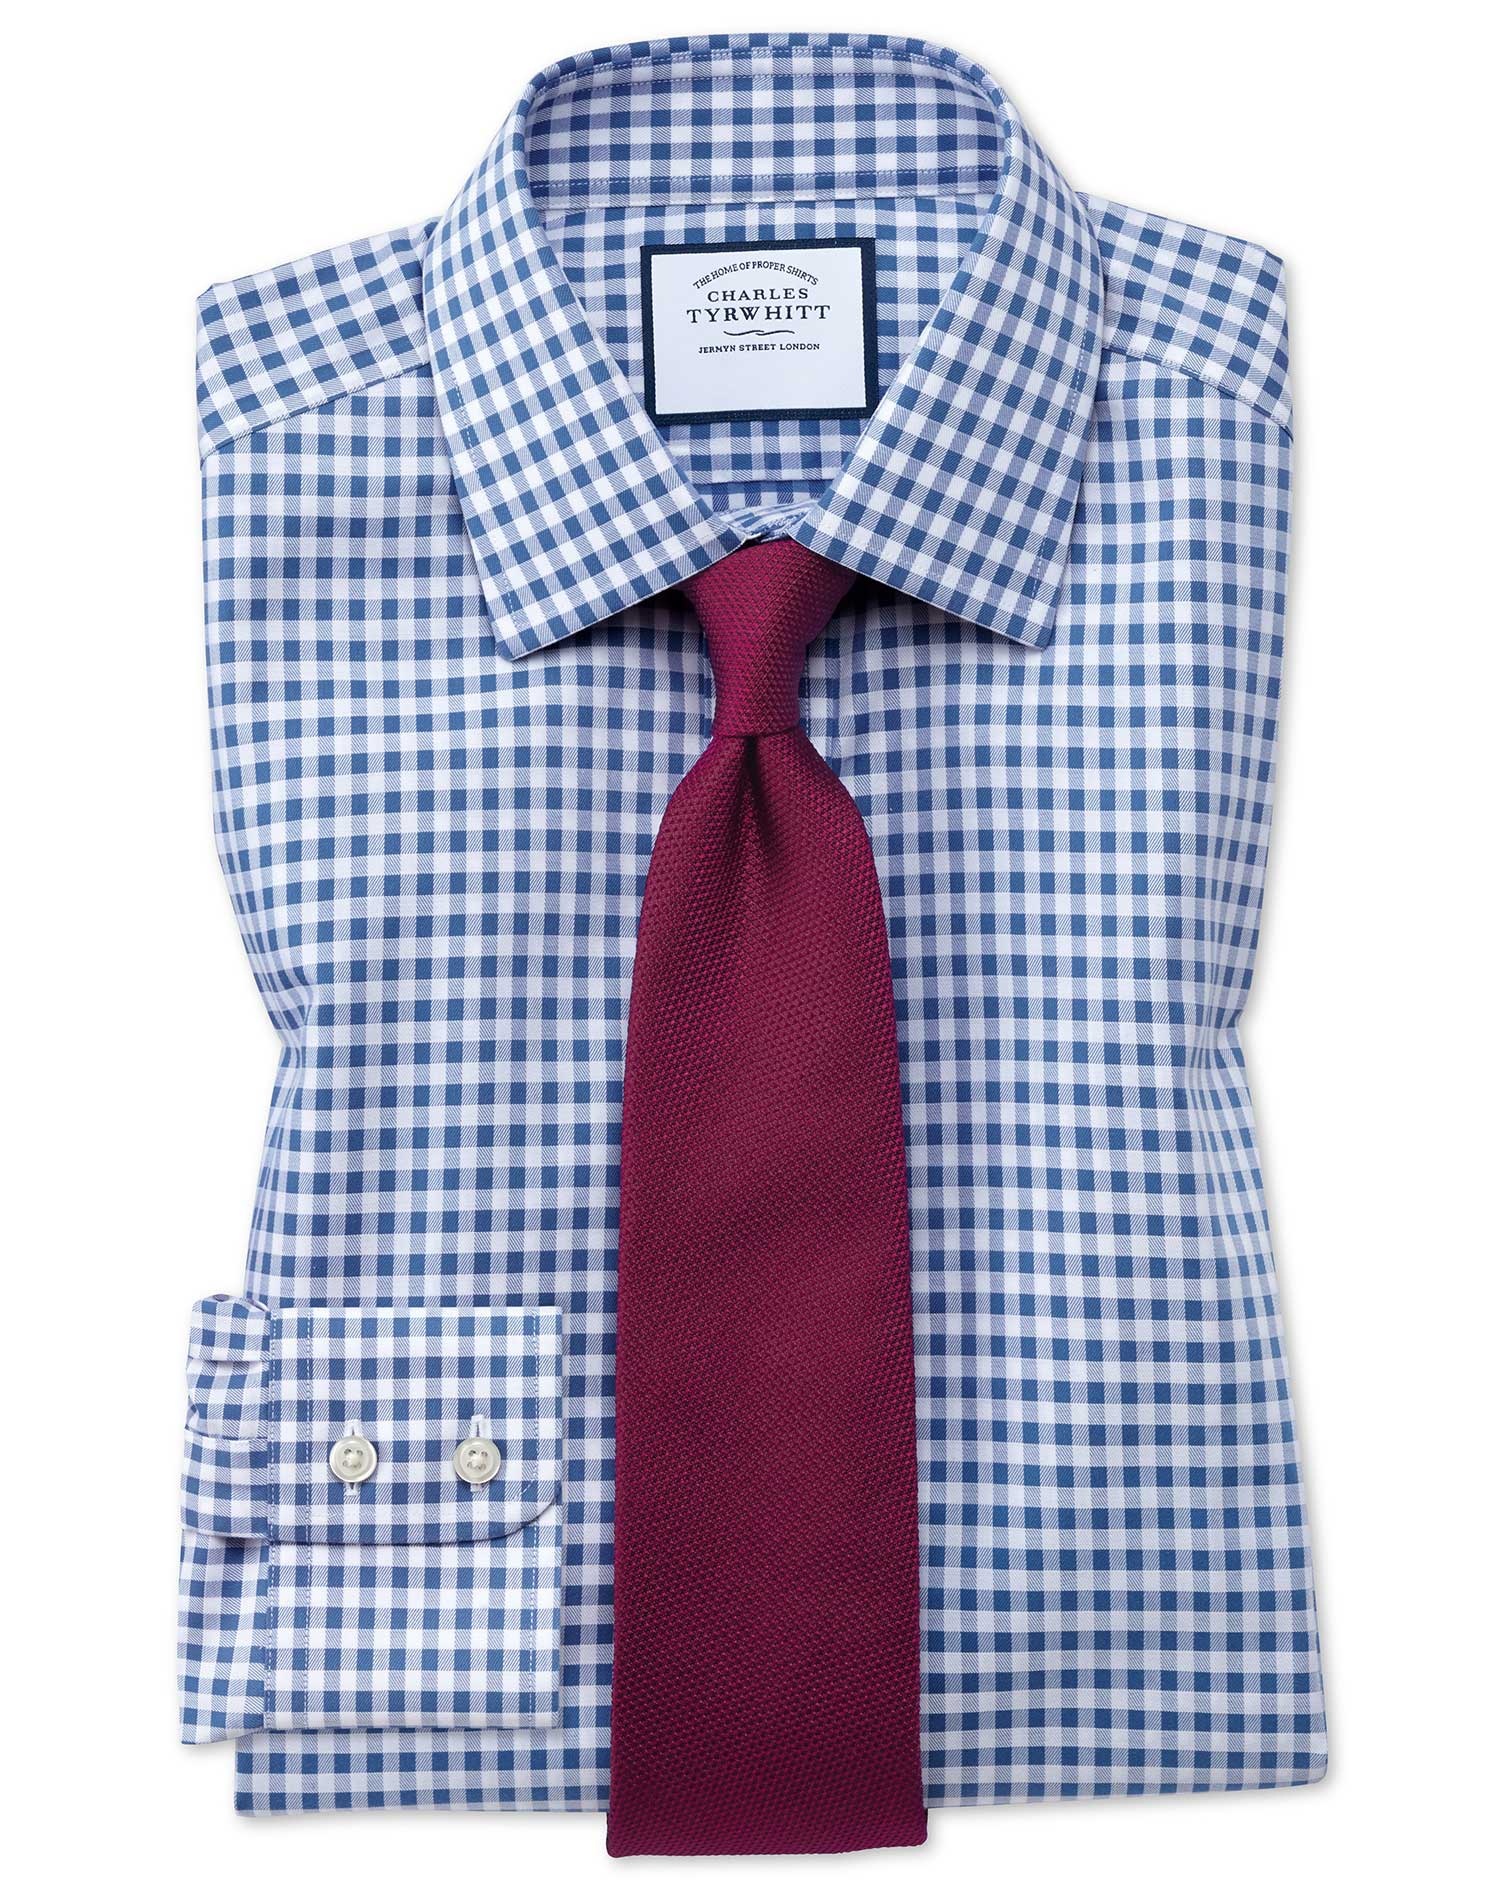 Extra Slim Fit Non-Iron Gingham Mid Blue Cotton Formal Shirt Single Cuff Size 16/34 by Charles Tyrwh